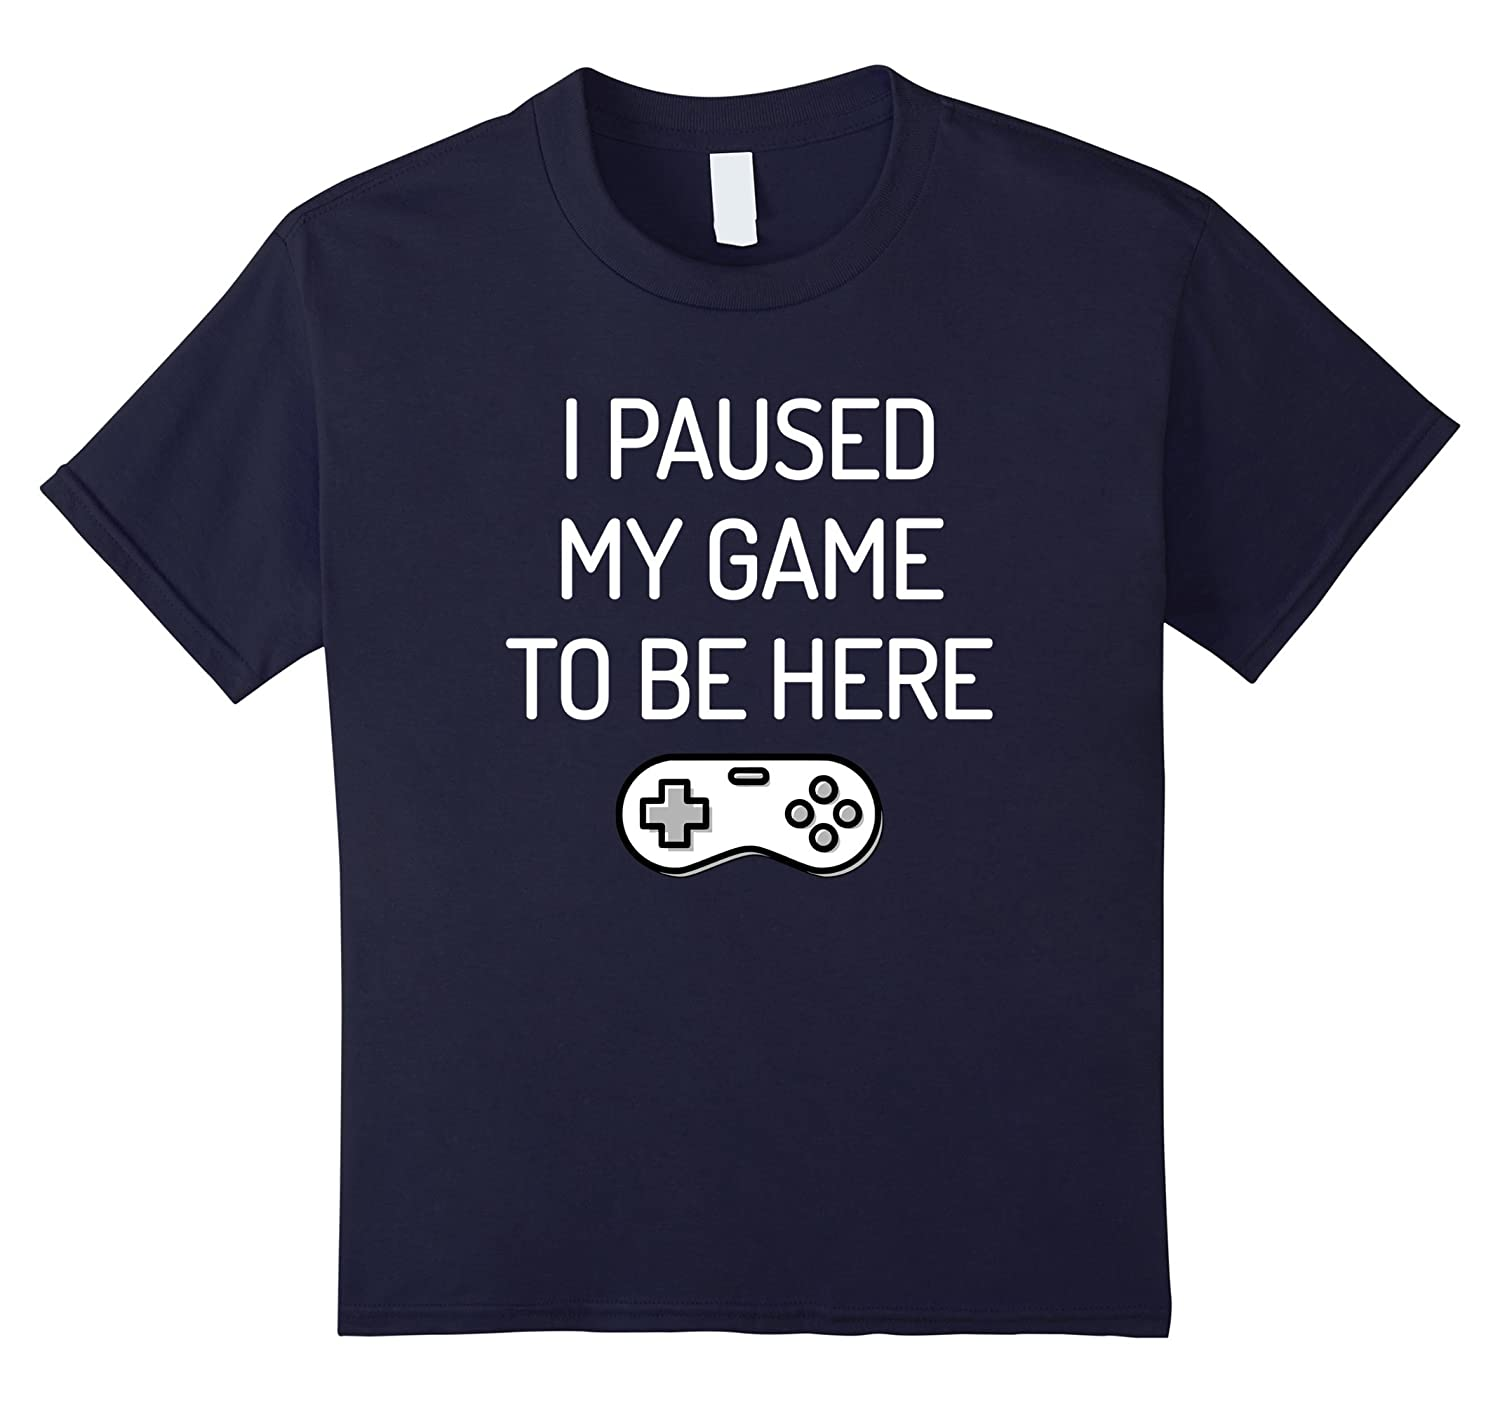 Paused T Shirt Funny Gamer Small-Tovacu